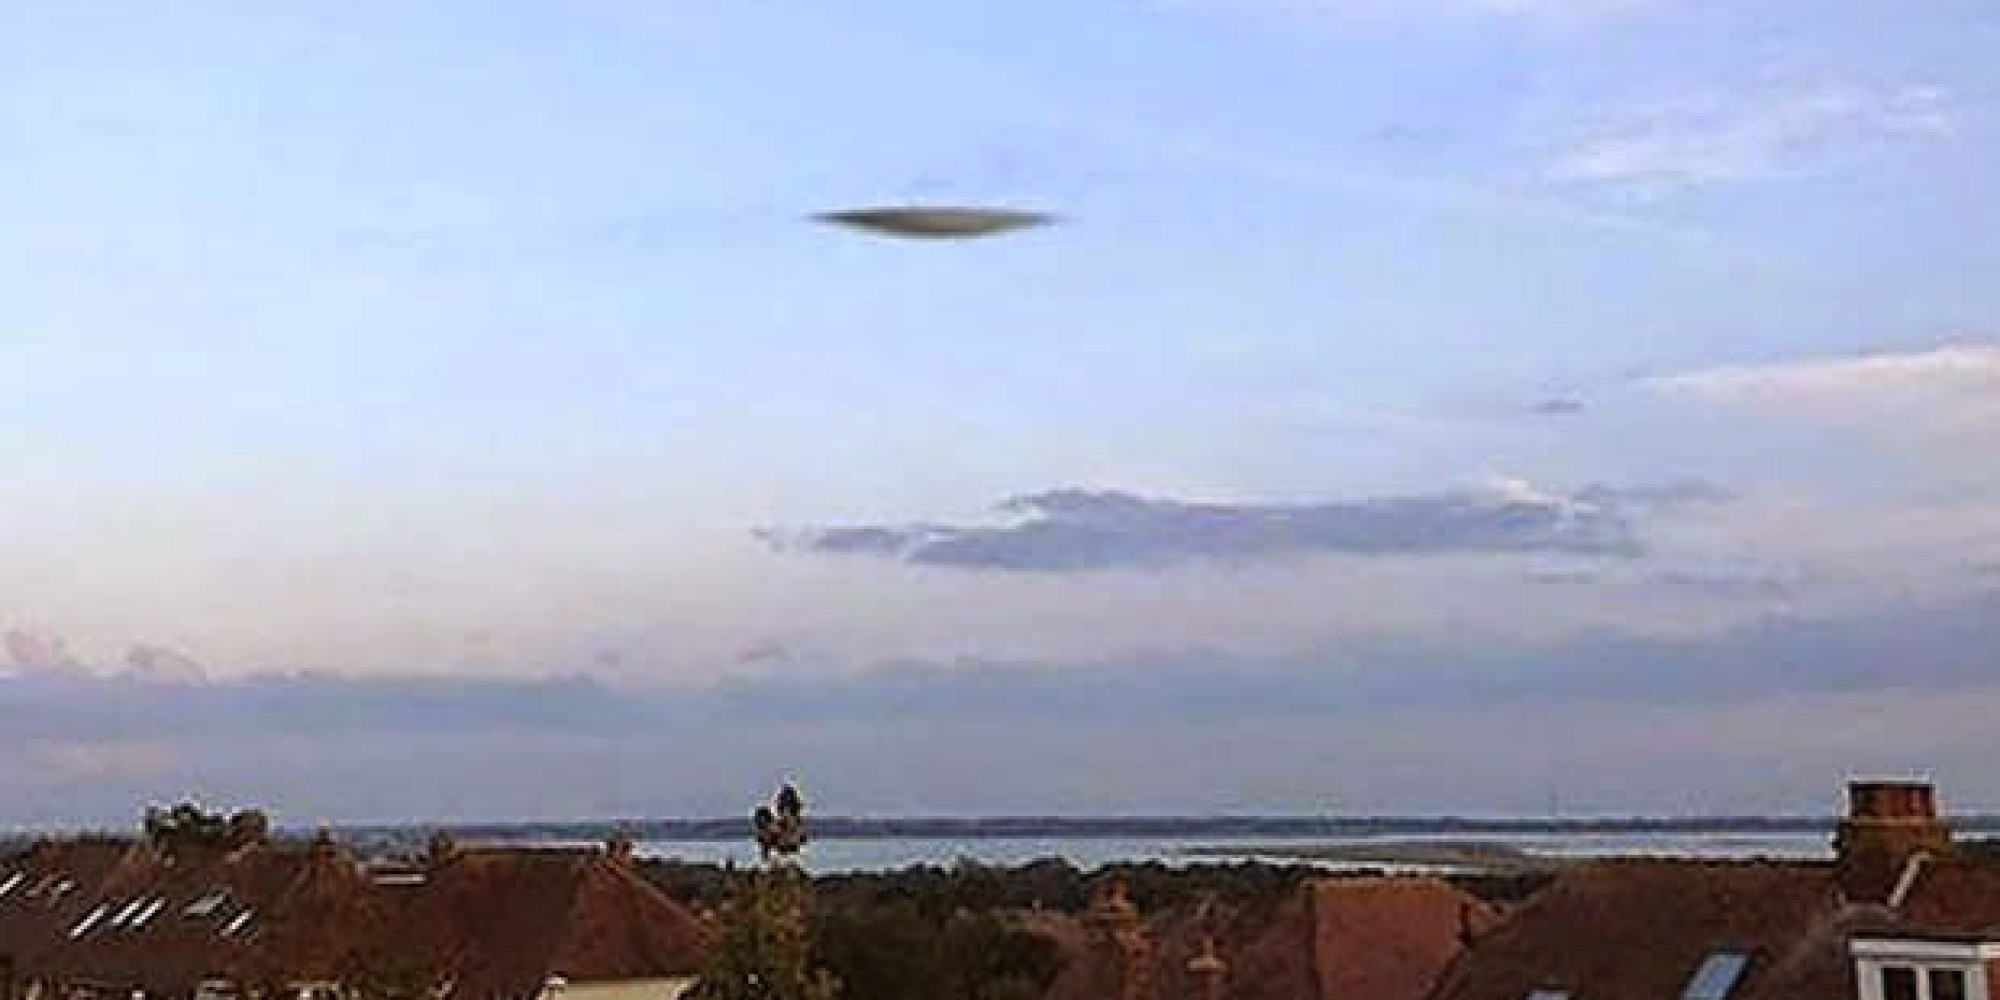 a critical look at the claim of ufo sightings in the united states Ufo sightings often come with an eerie backstory doc searls/flickr the question of if there's life on other planets is hotly debated across the globe a series of inexplicable ufo sightings and.